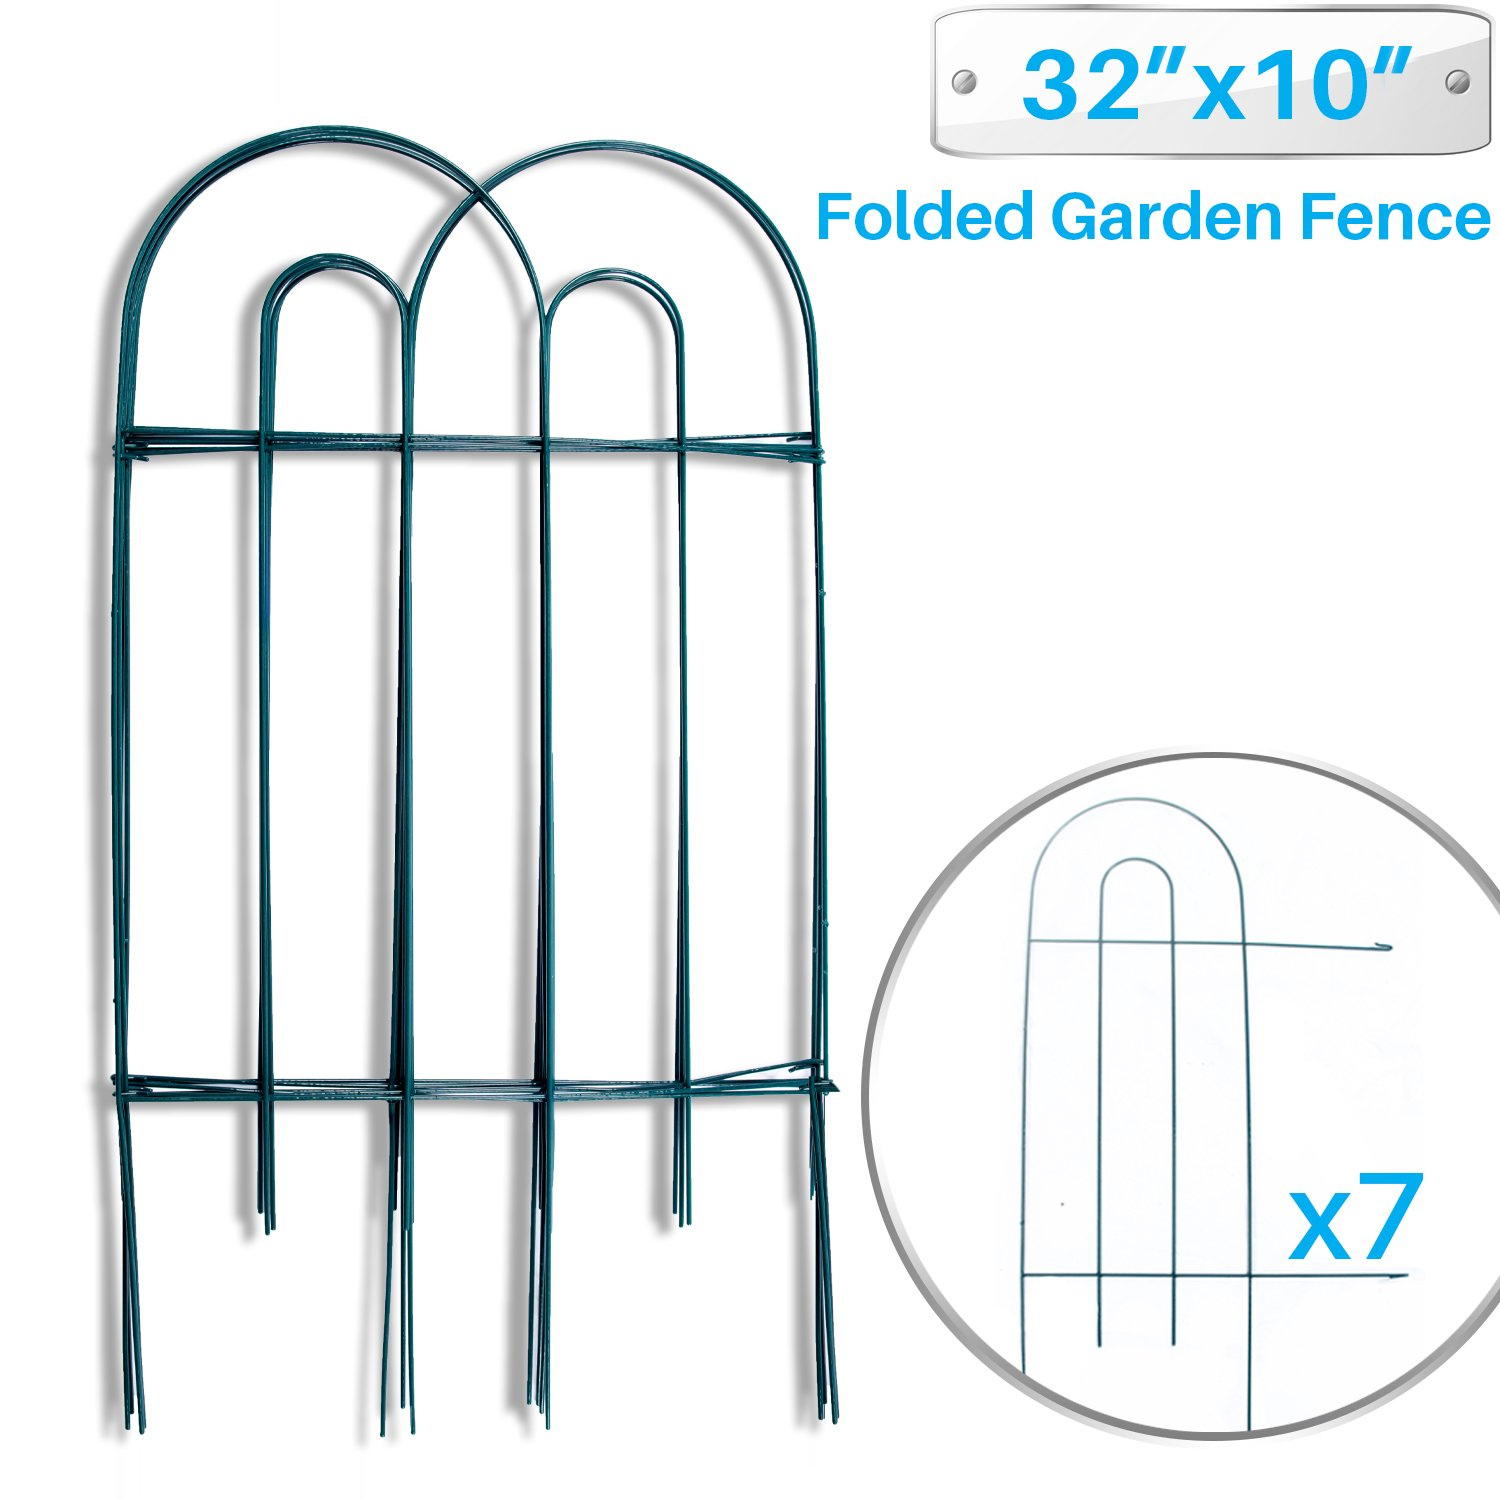 Buy Patio Paradise Garden Border Folding Fence 32 x 10-Inch - 7 ...